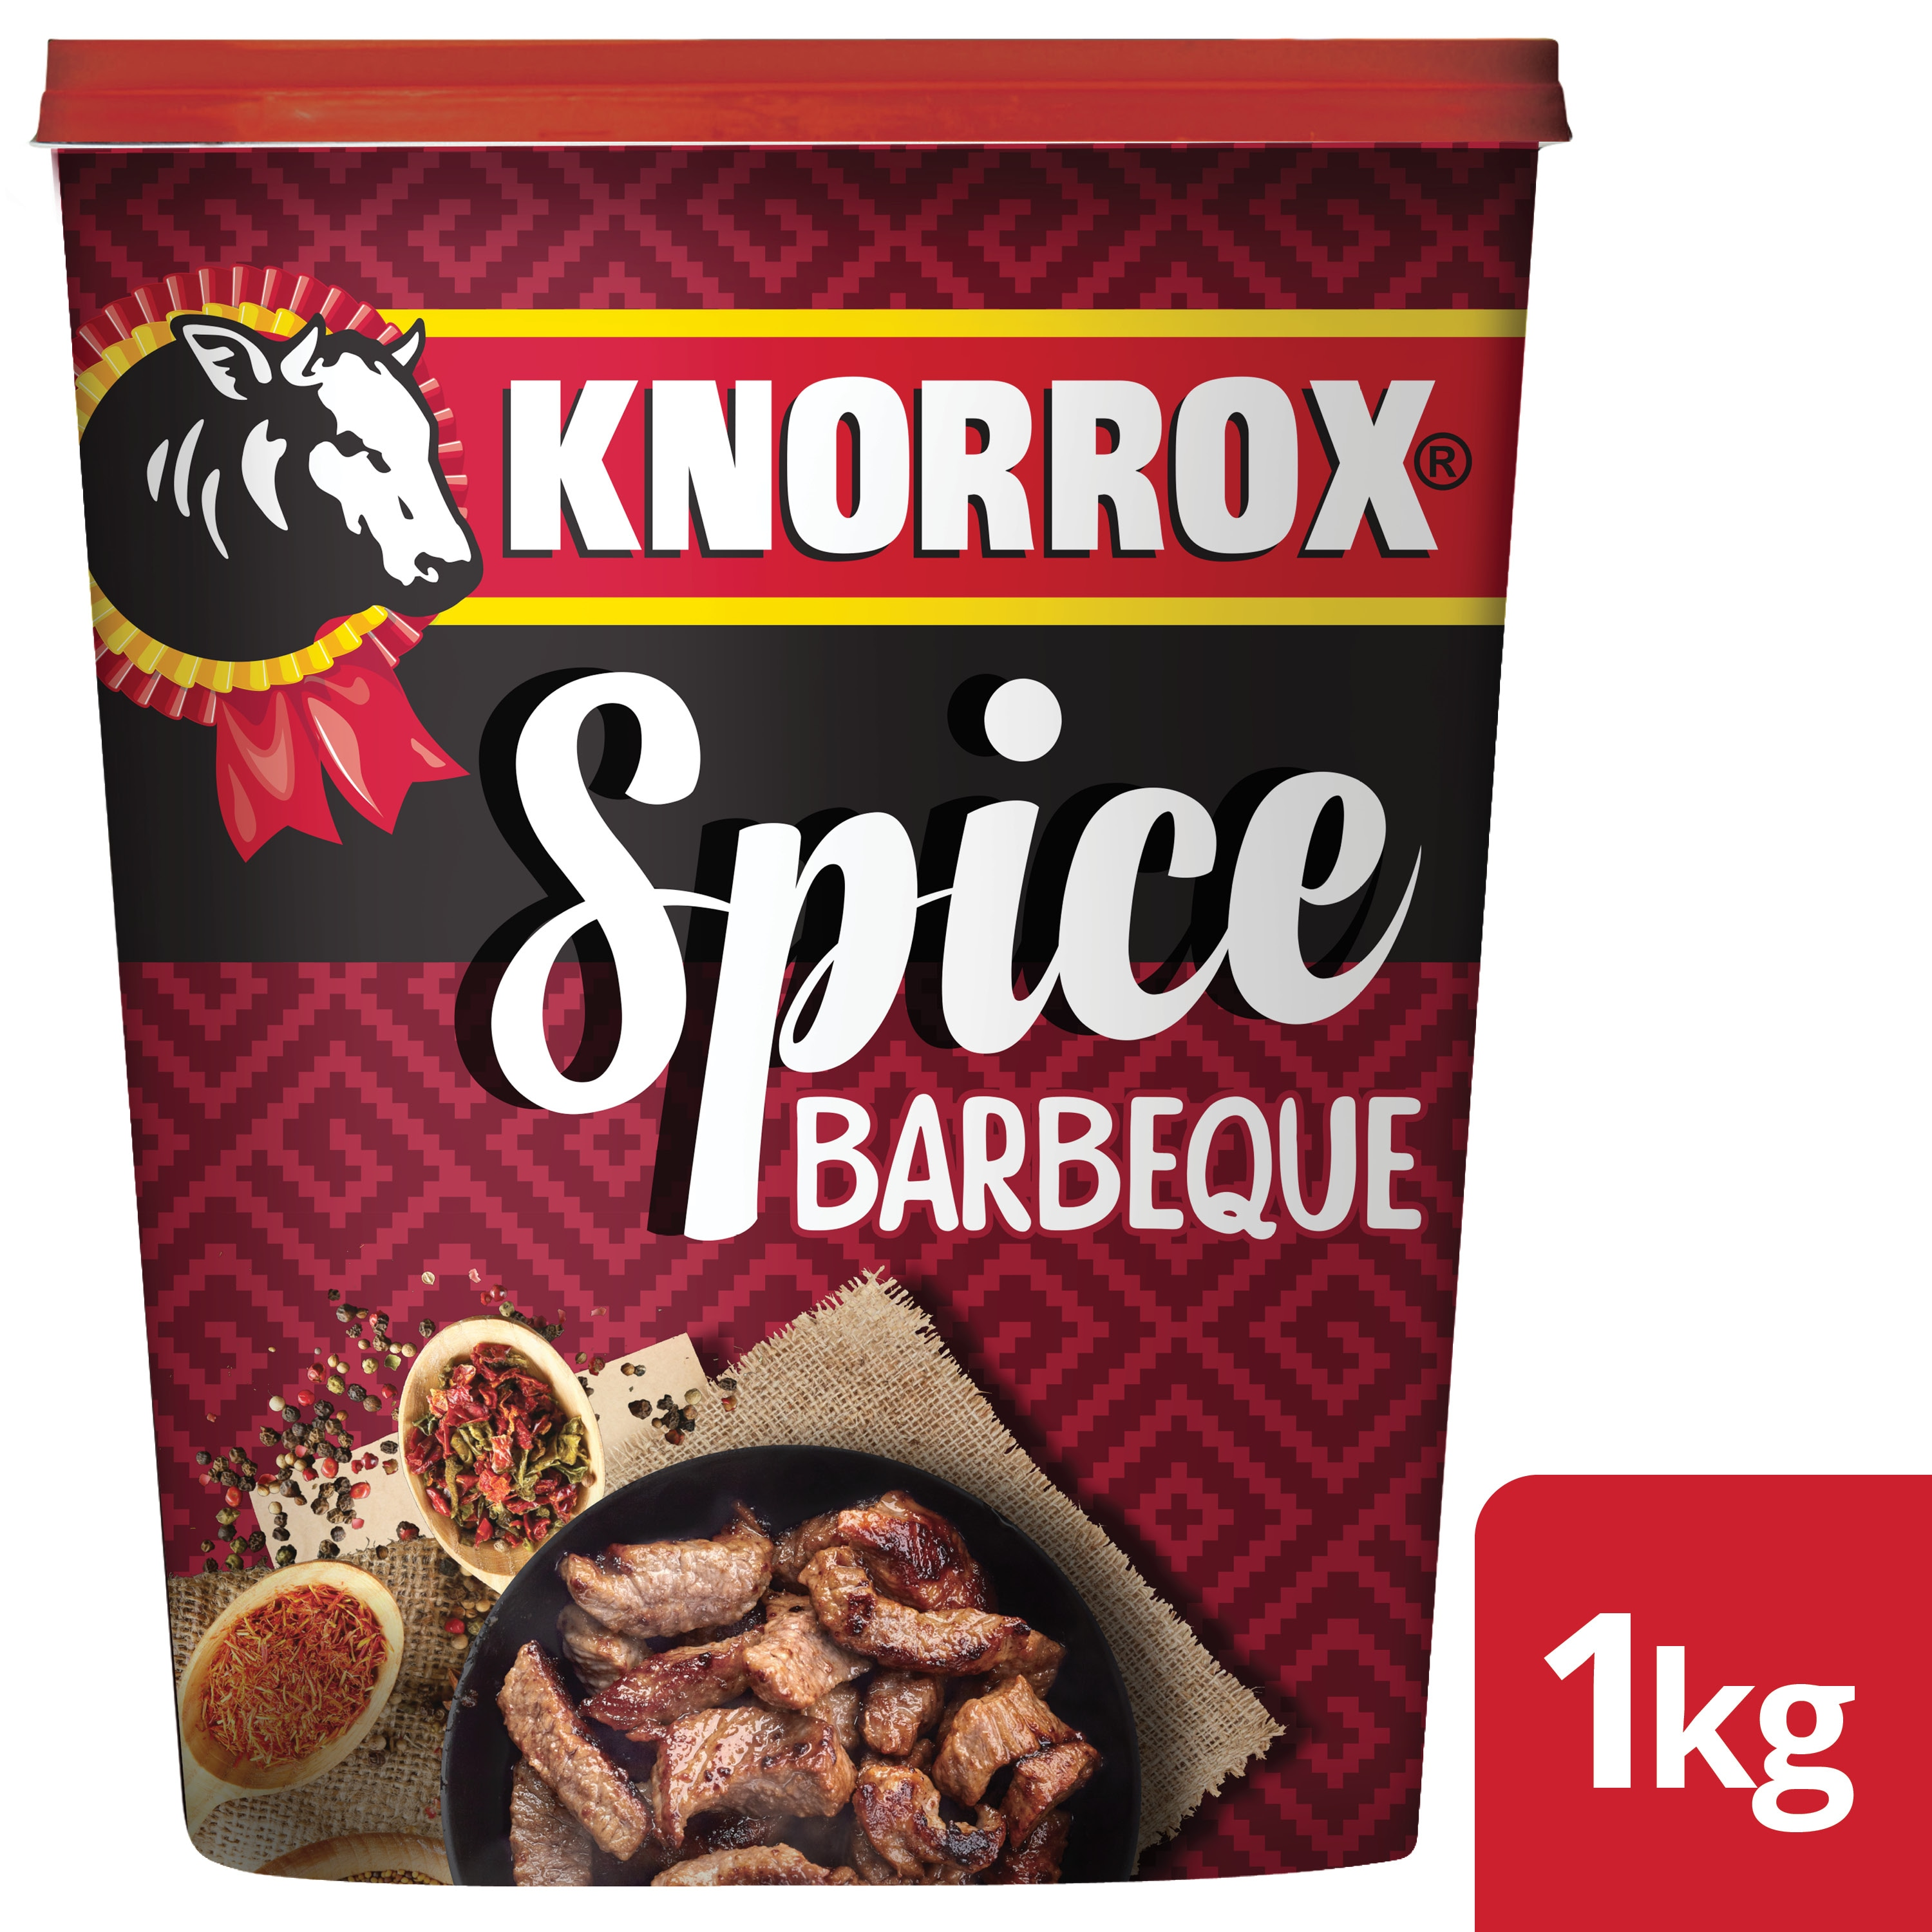 Knorrox Barbeque Spice - Trust Knorrox spices for the great South African taste your customers love.